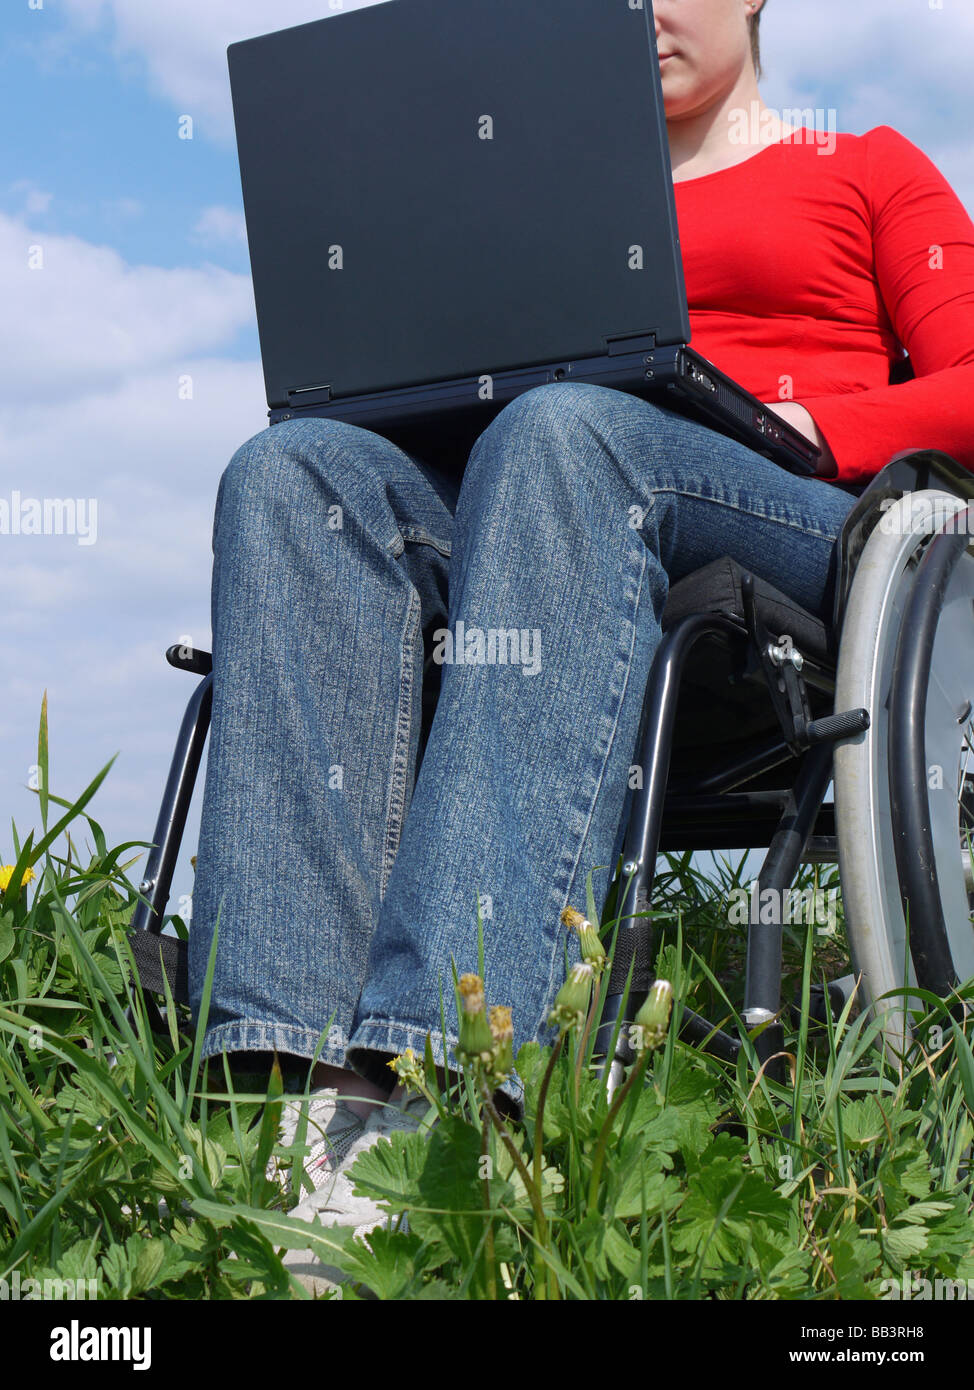 Handicapped woman on wheelchair using laptop outdoors - Stock Image